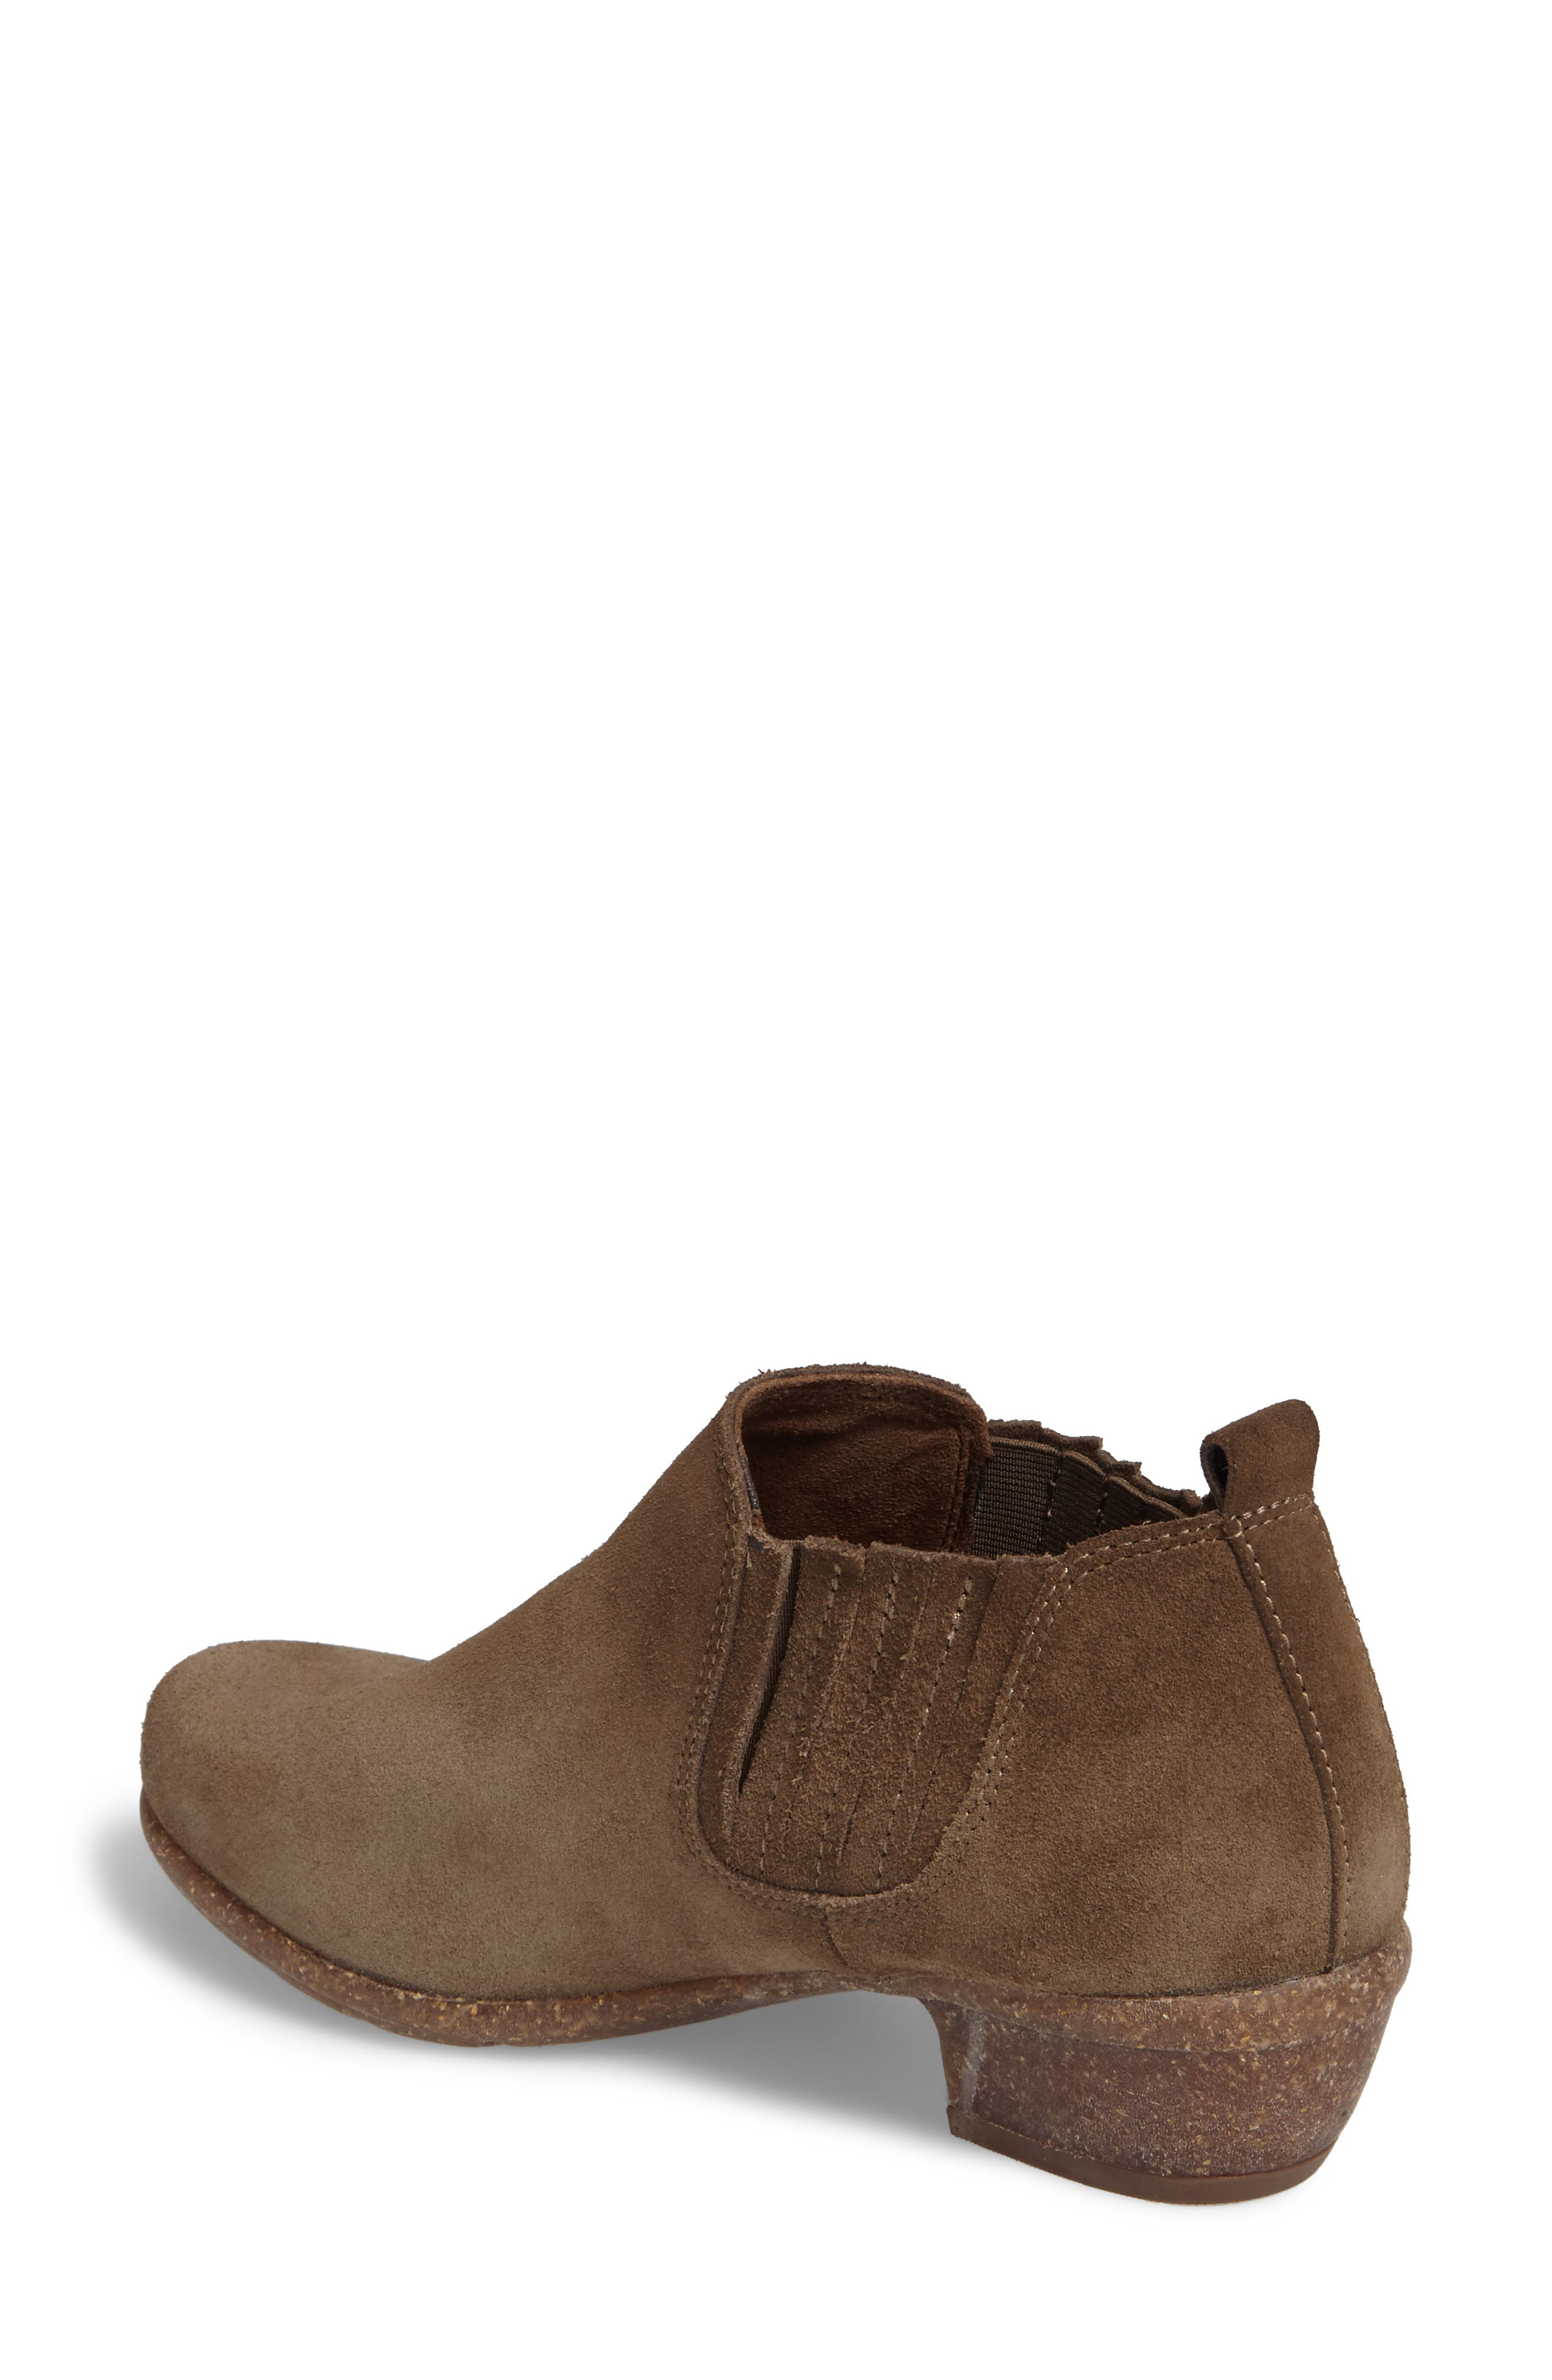 Wilrose Jade Low Chelsea Bootie,                             Alternate thumbnail 2, color,                             Olive Suede